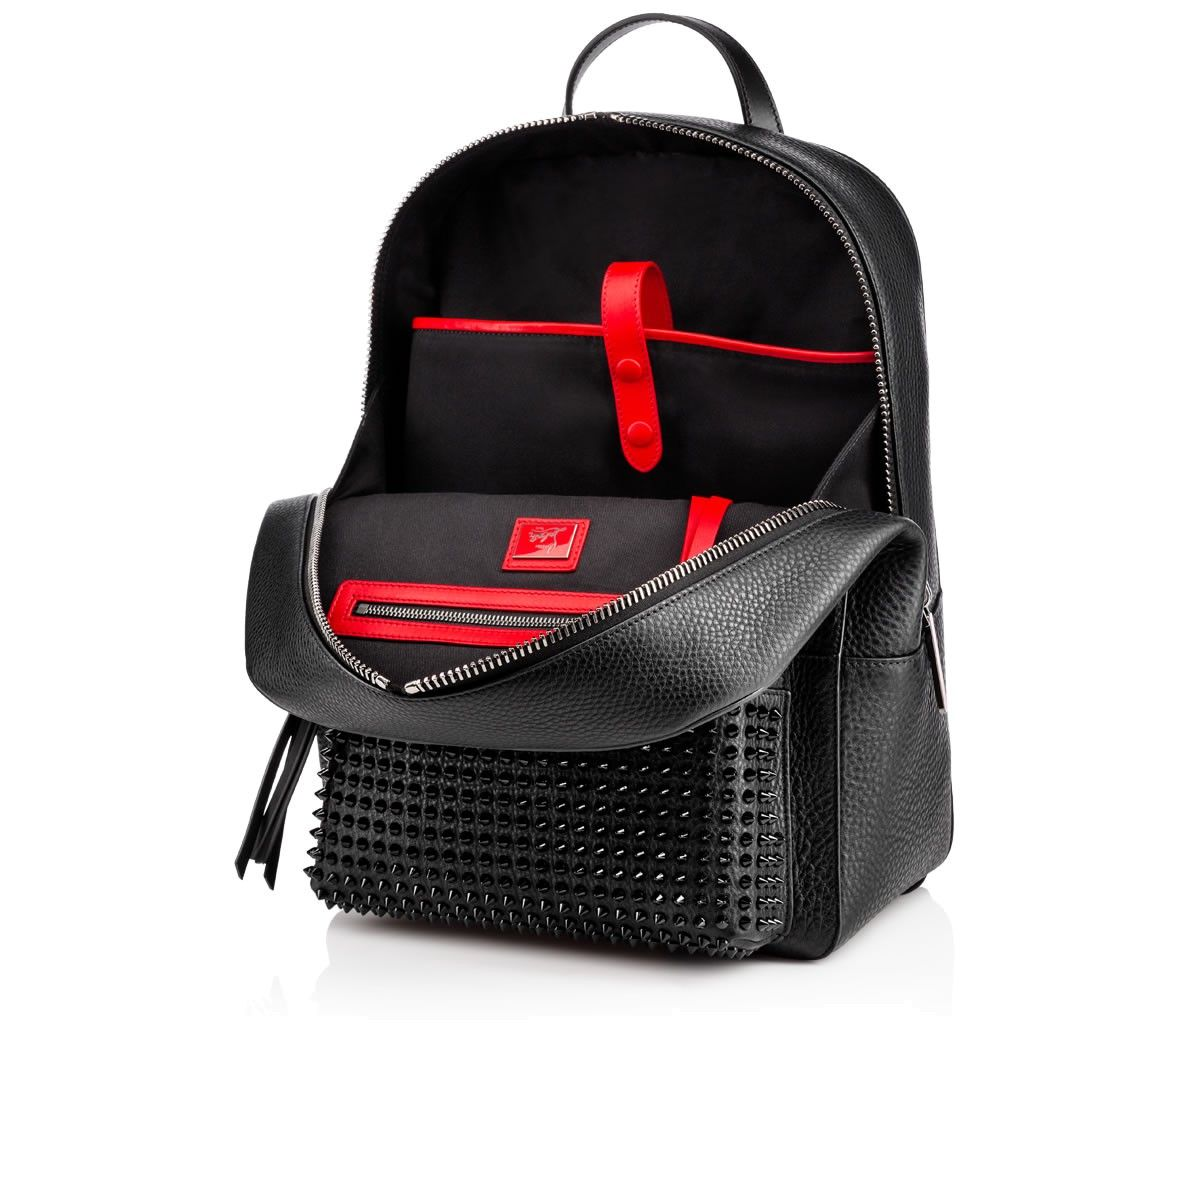 e4df9426d0f Bags - Aliosha Backpack - Christian Louboutin | just different ...